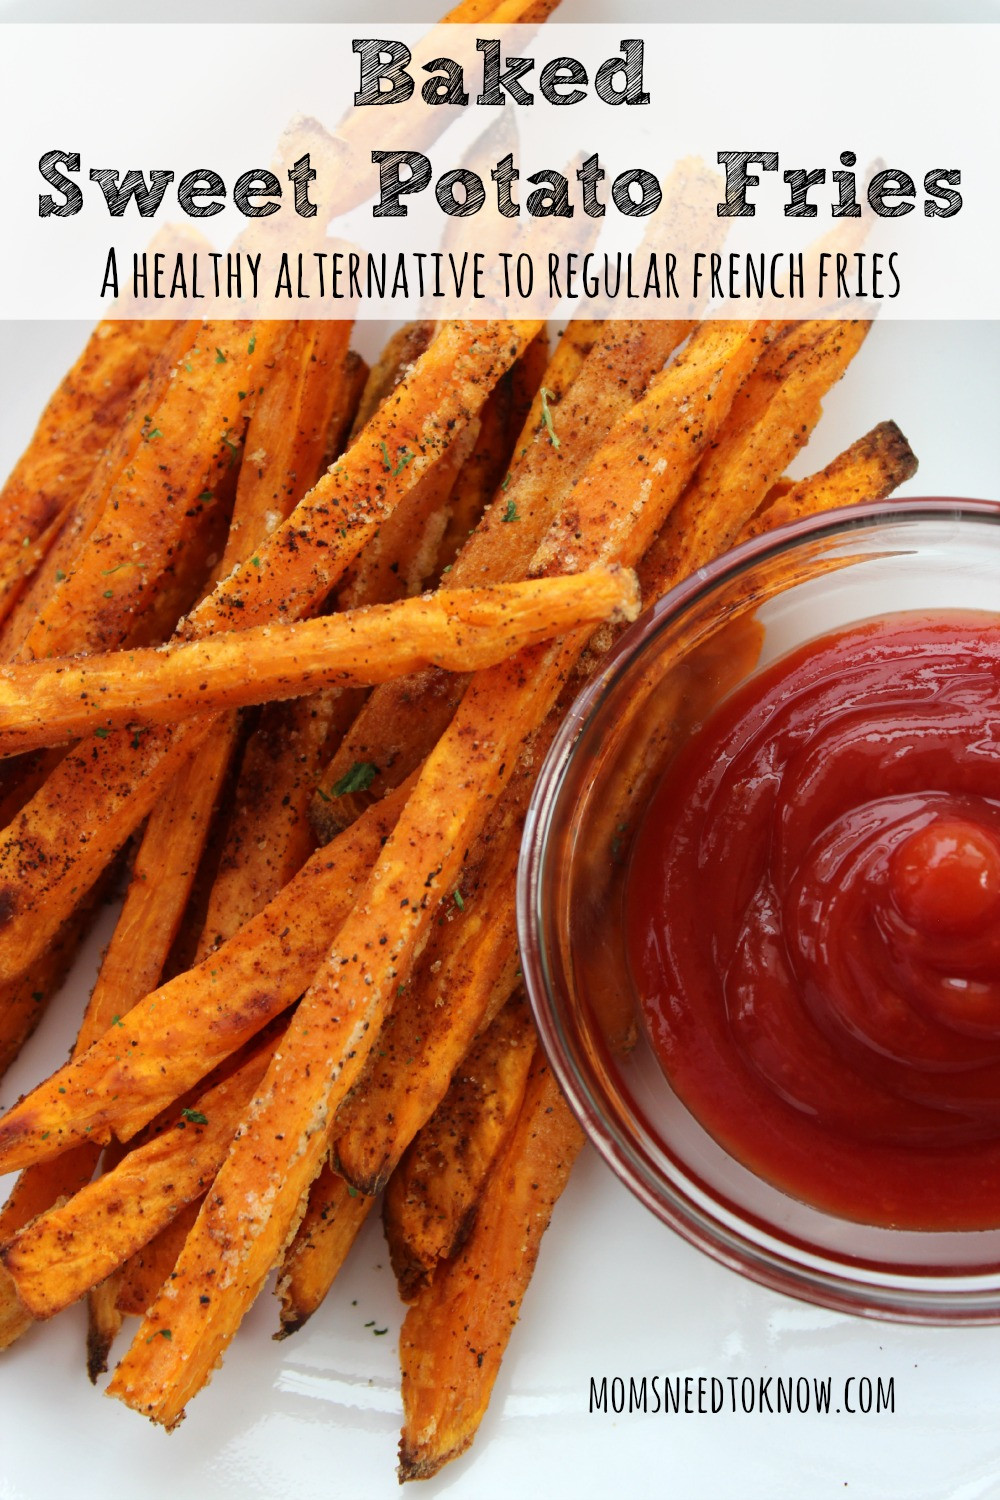 How To Cut Sweet Potato Fries  Baked Sweet Potato Fries – This Recipe Works